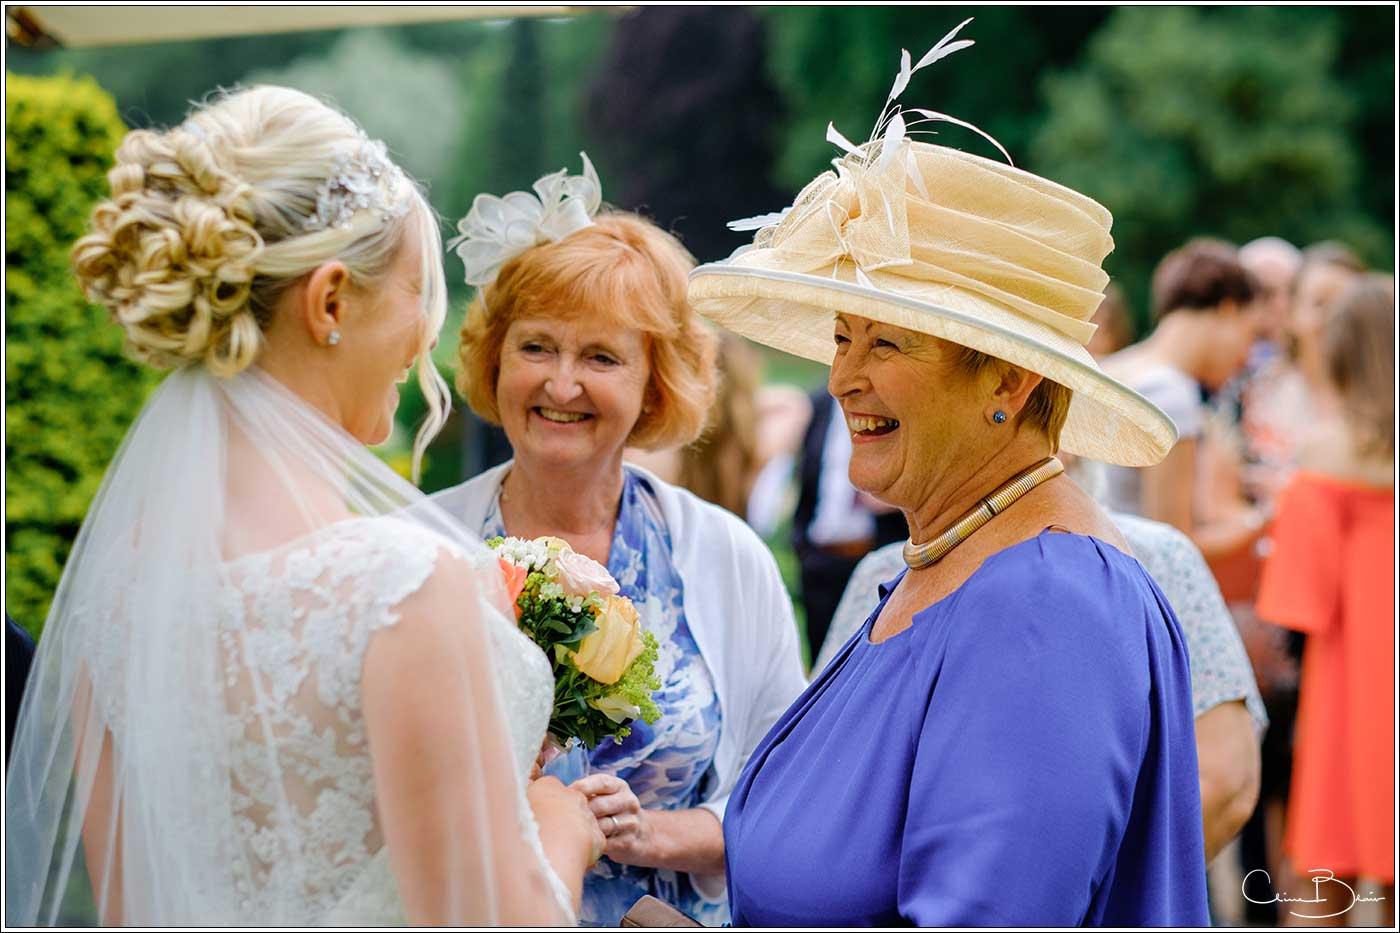 Coombe Abbey wedding photography showing 2 women with bride